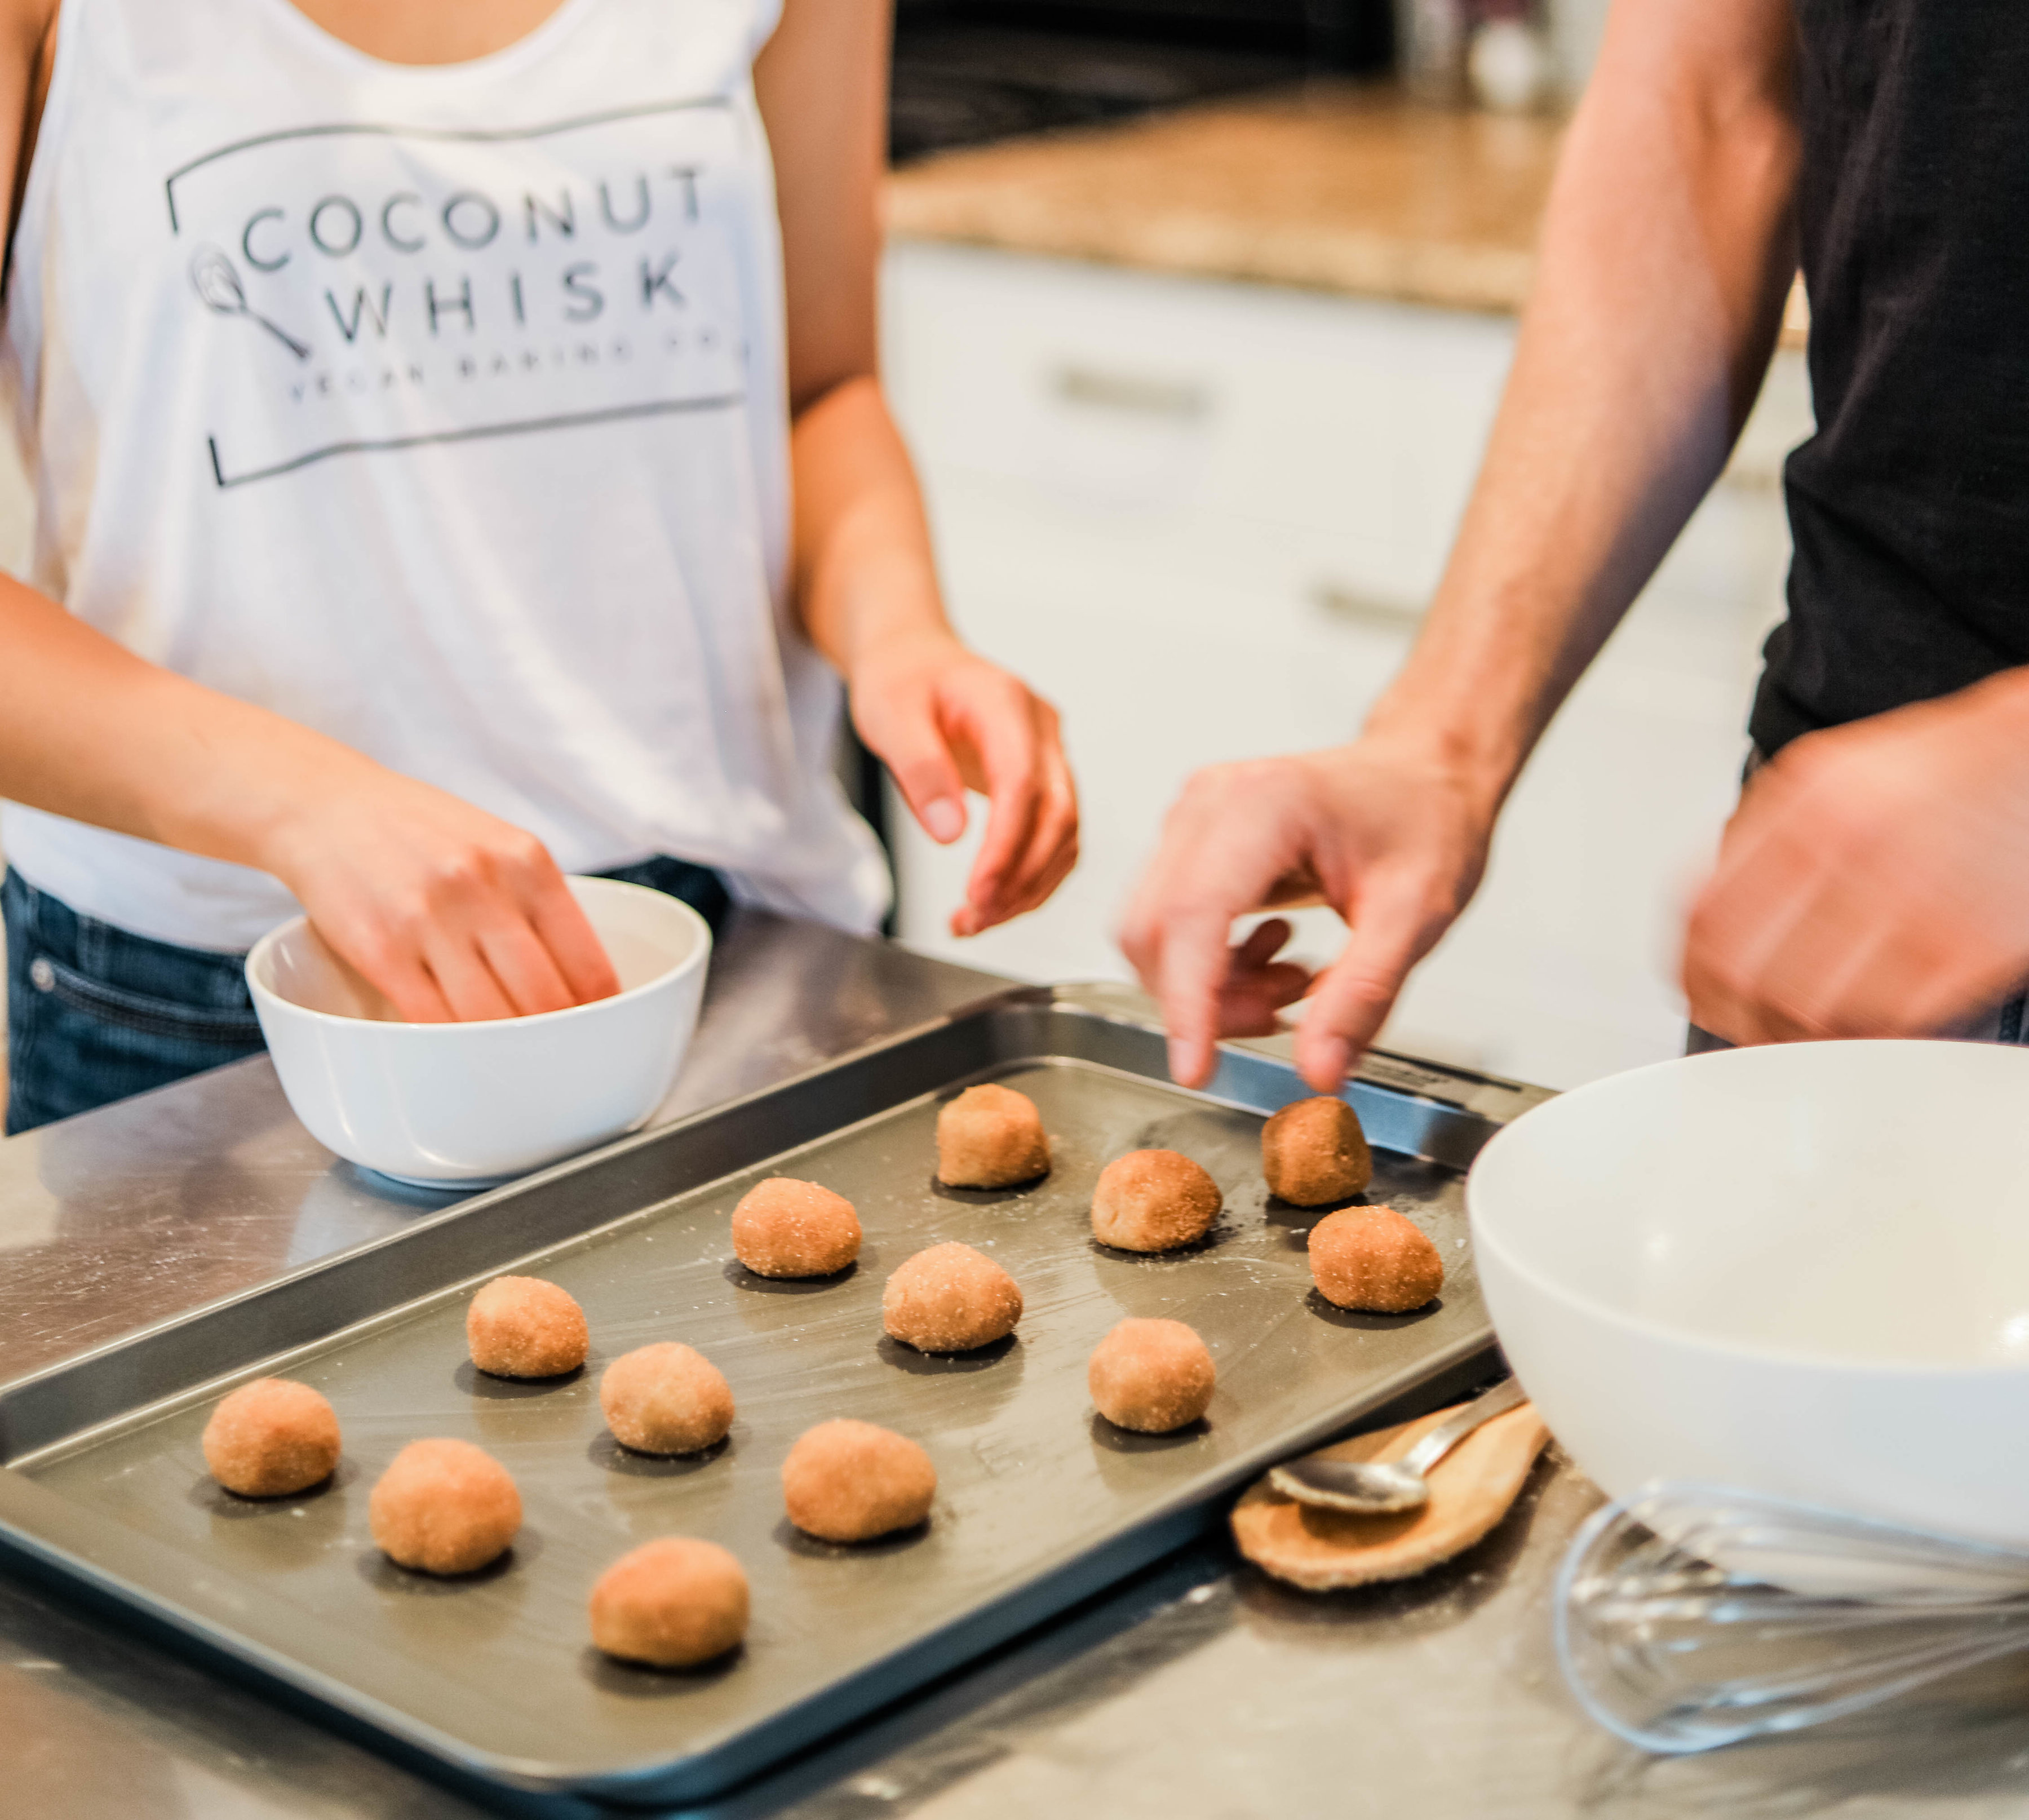 Local Spotlight on Coconut Whisk Baking | Lakewinds Food Co-op